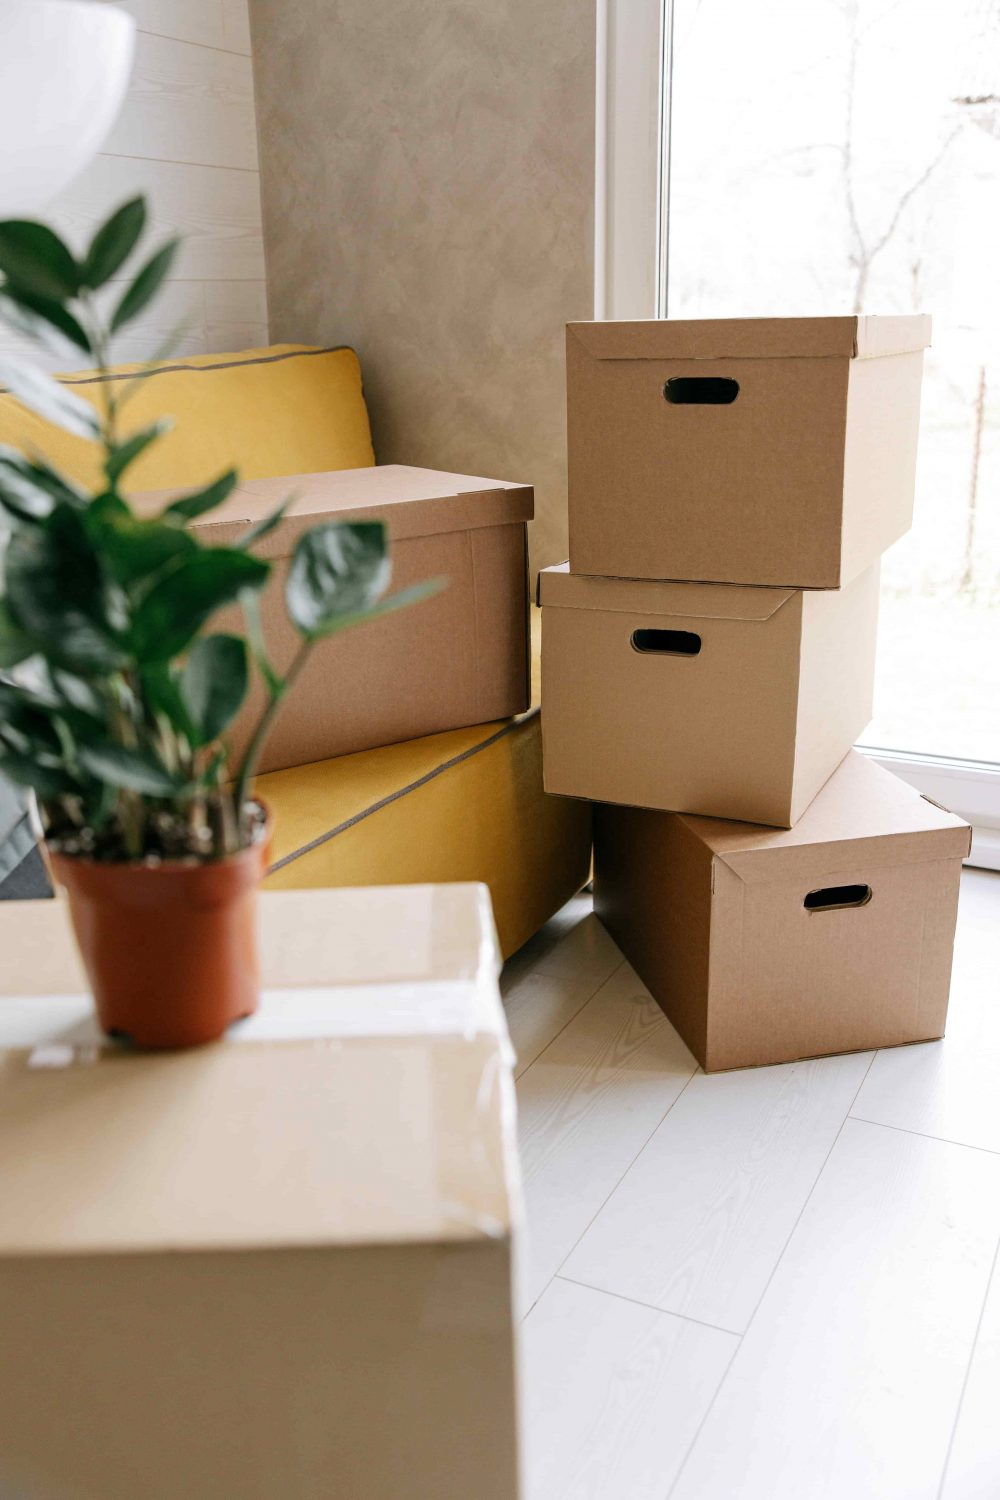 Moving Home In 6 Weeks? Your Checklist for Getting Ready Before a Move